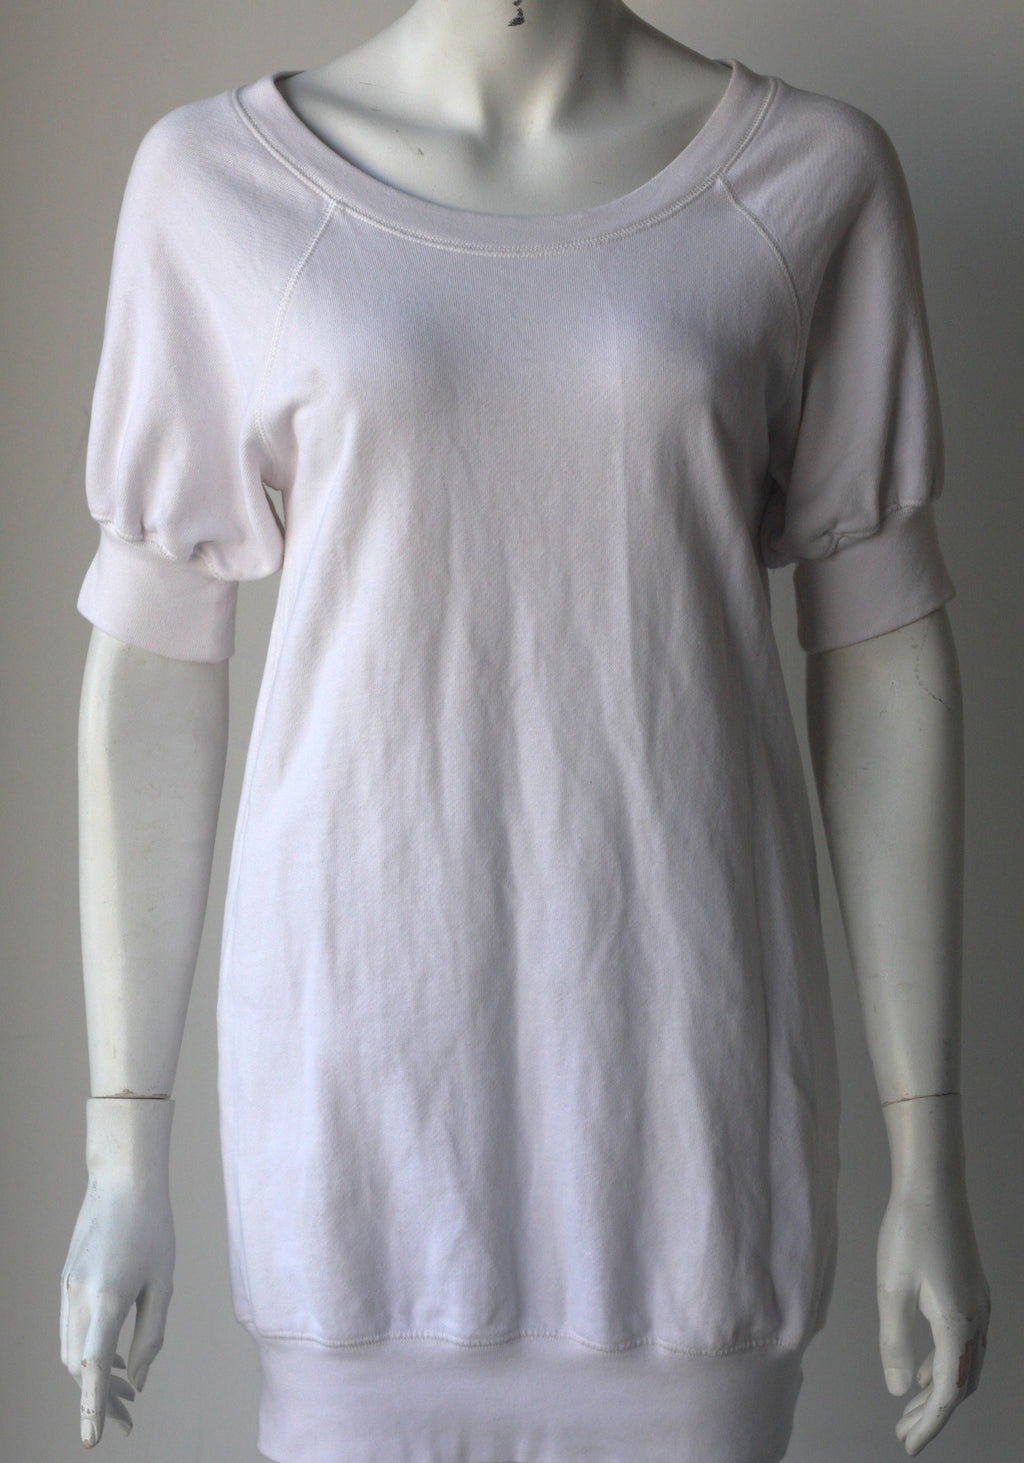 French Connection Denim White Sweater Dress - Joyce's Closet  - 1